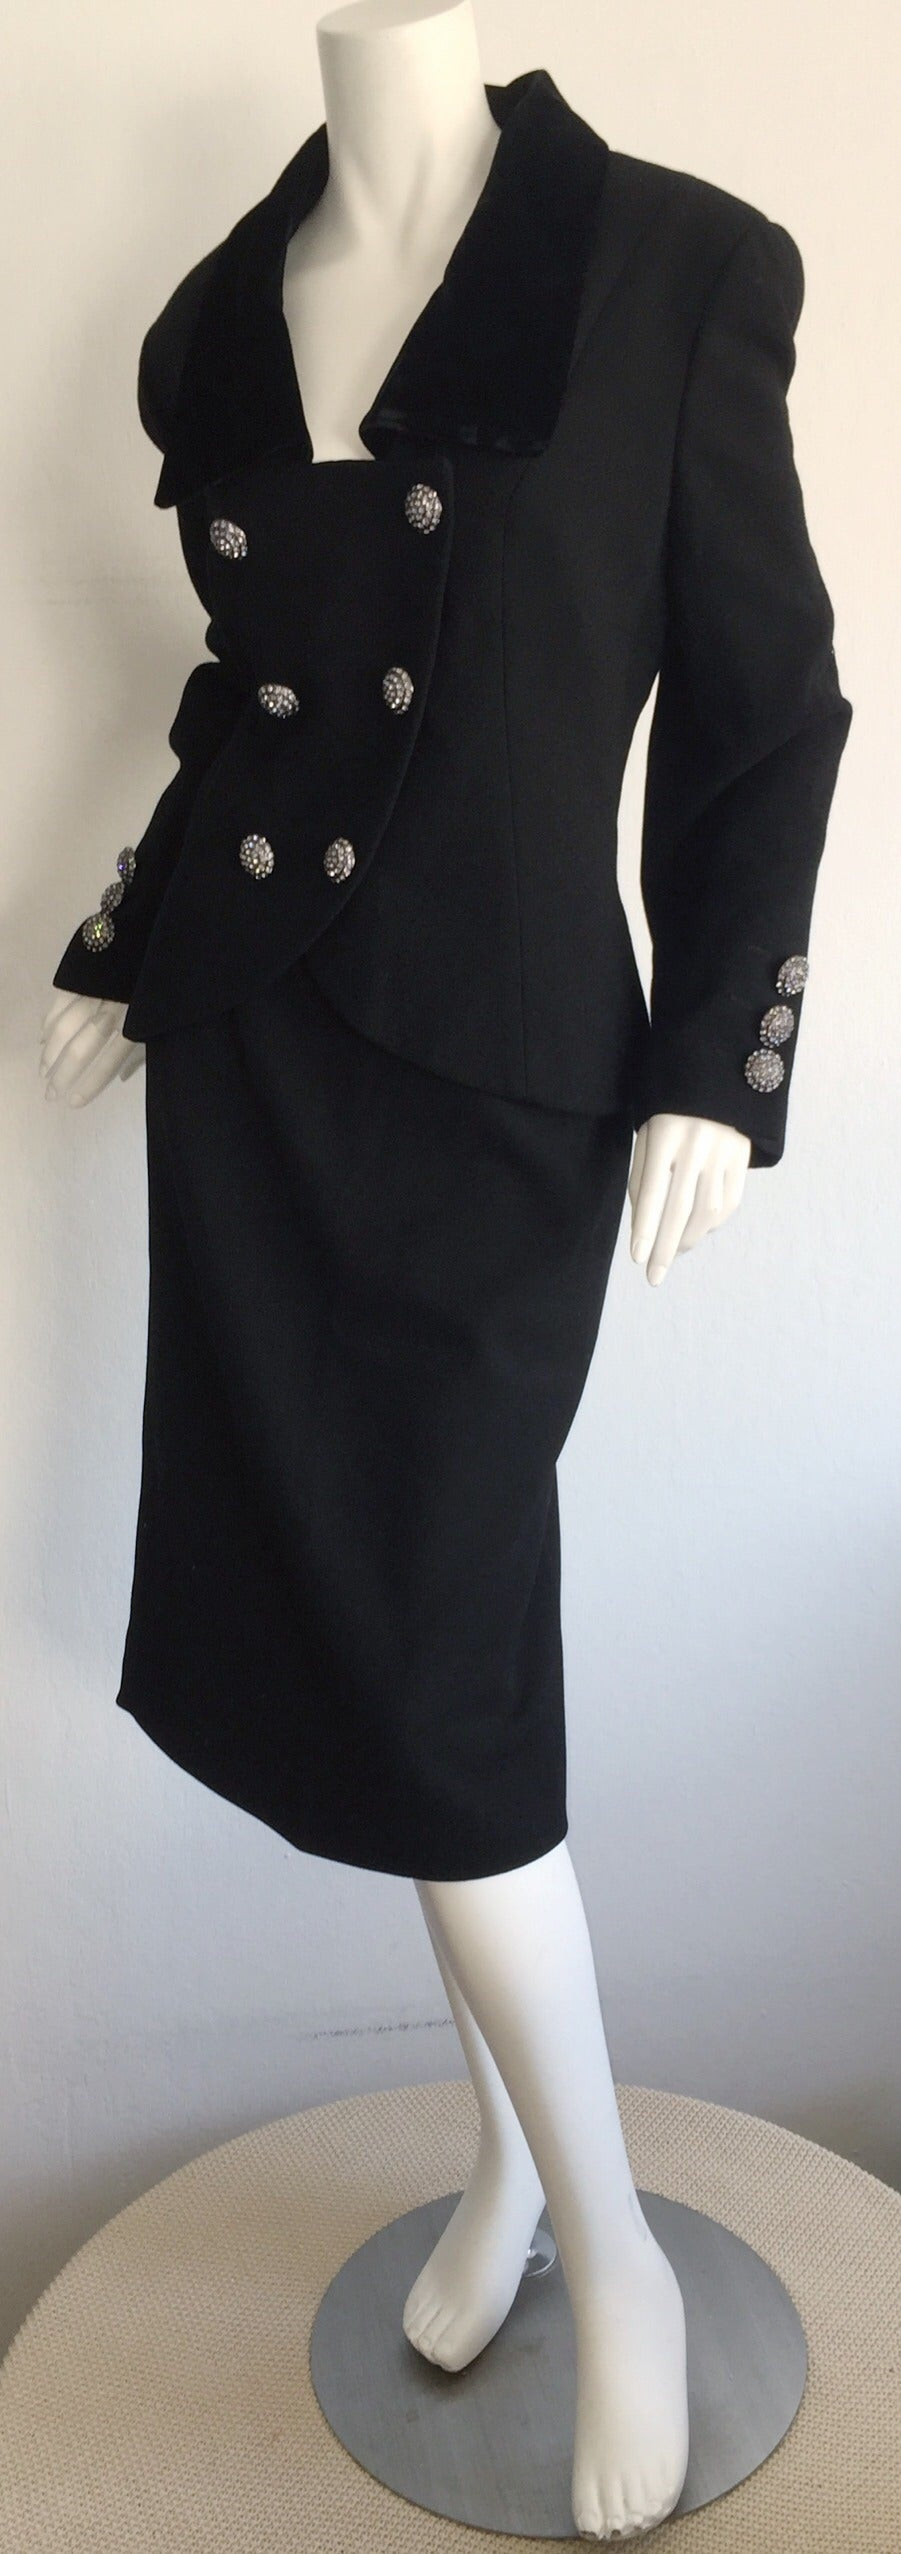 Vintage Andrea Odicini Couture Black Skirt Suit + Rhinestone Buttons Size Large In Excellent Condition For Sale In Chicago, IL